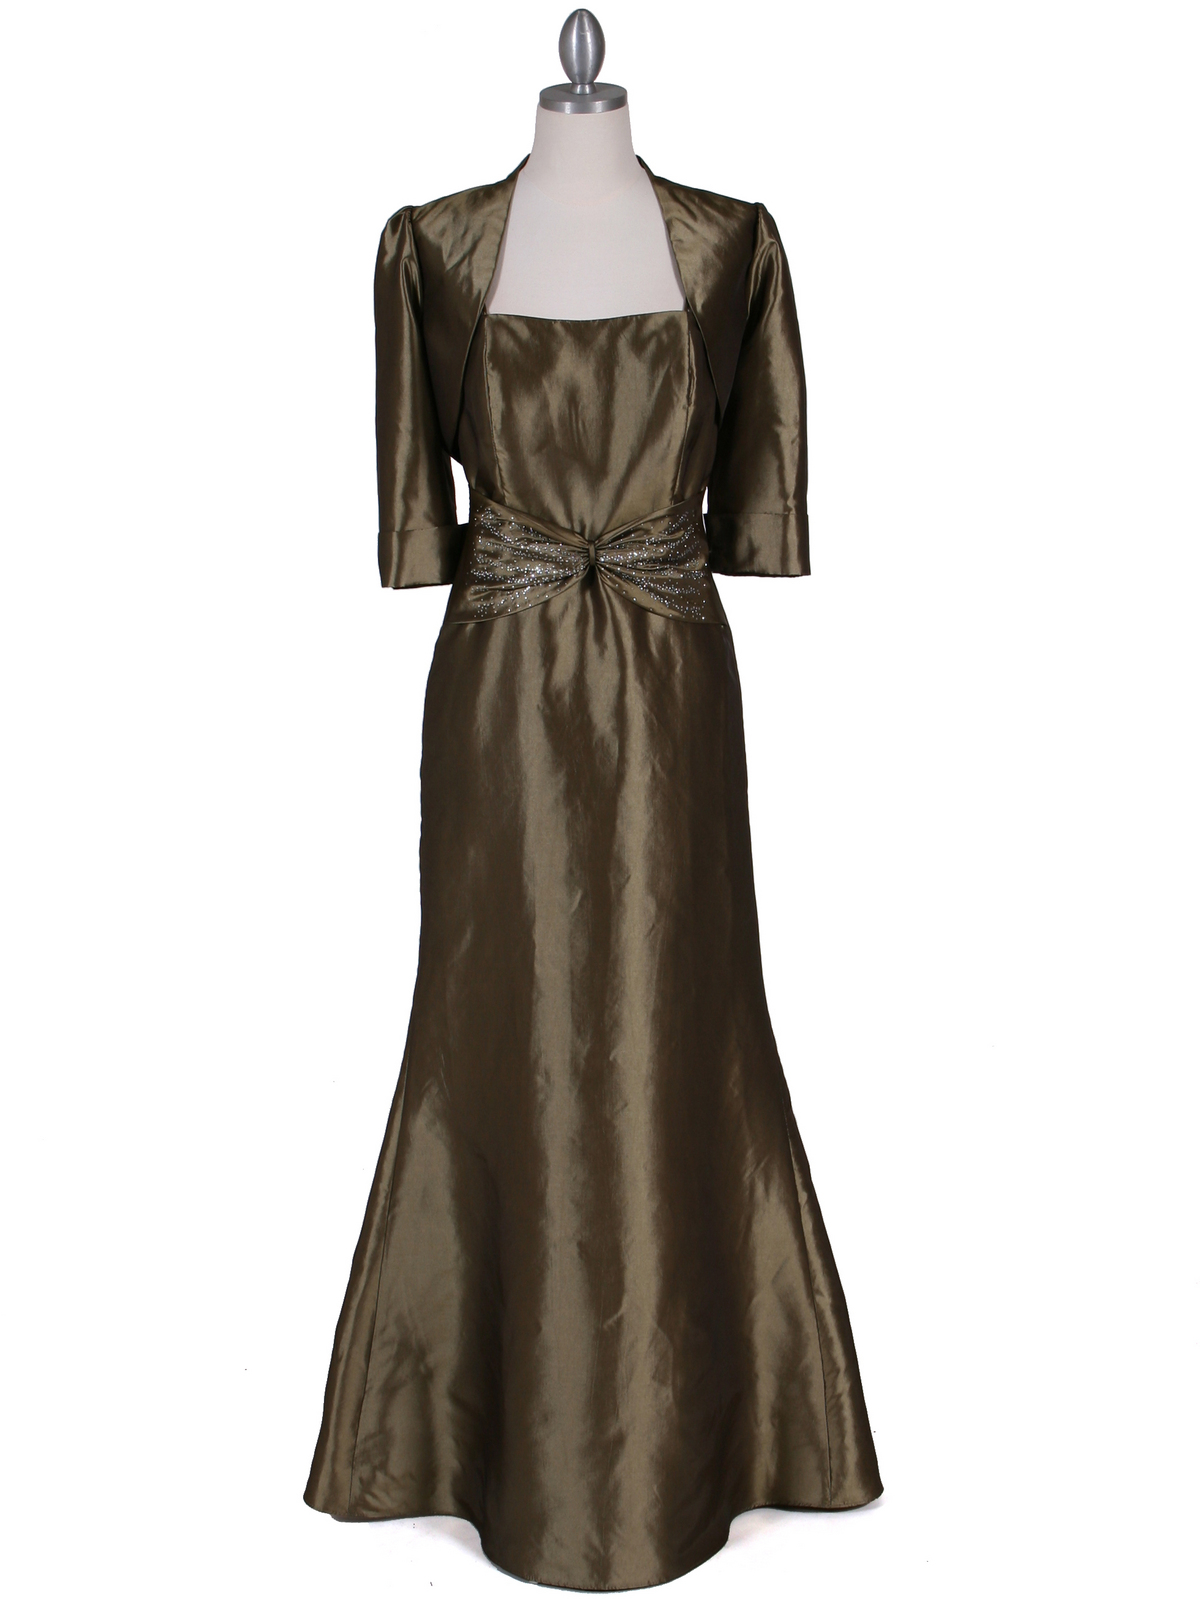 Olive Taffeta Evening Dress With Bolero Jacket Sung Boutique L A